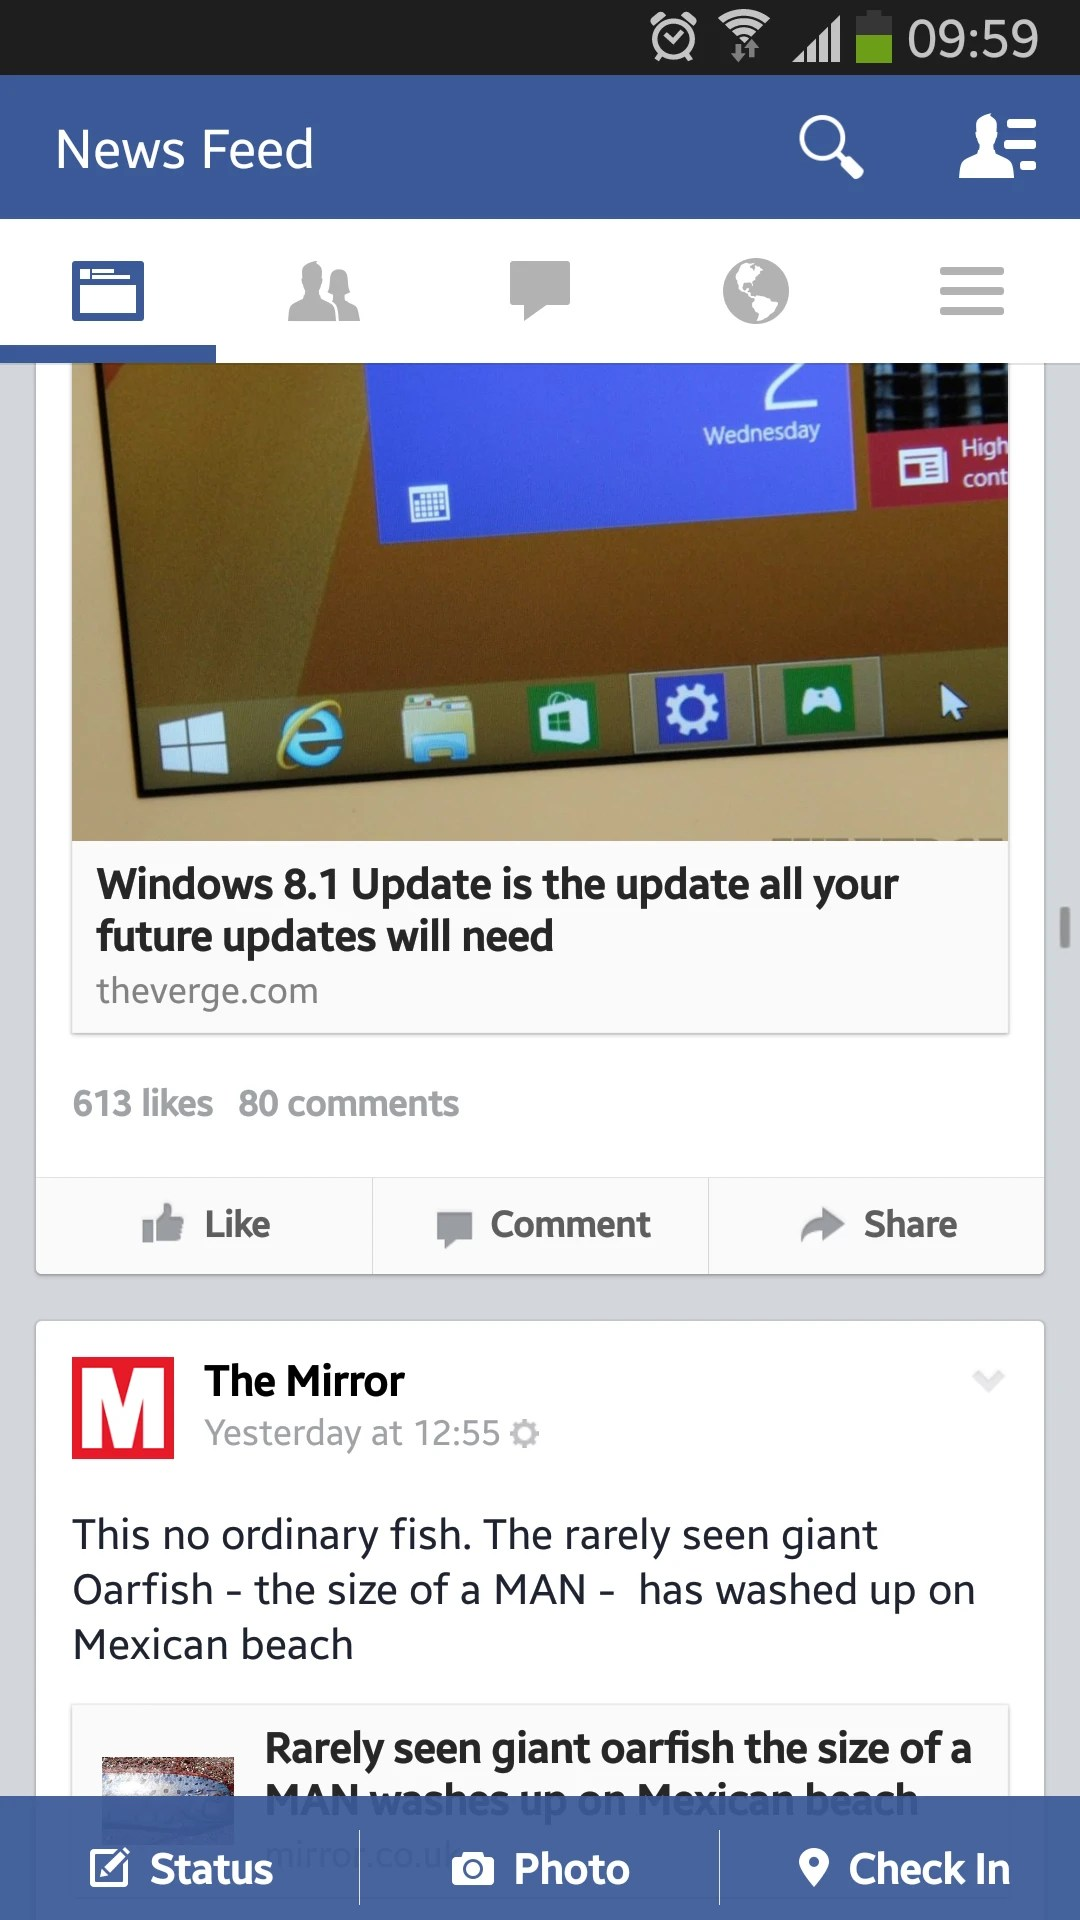 Facebook for Android receives the flat design treatment and an interface overhaul